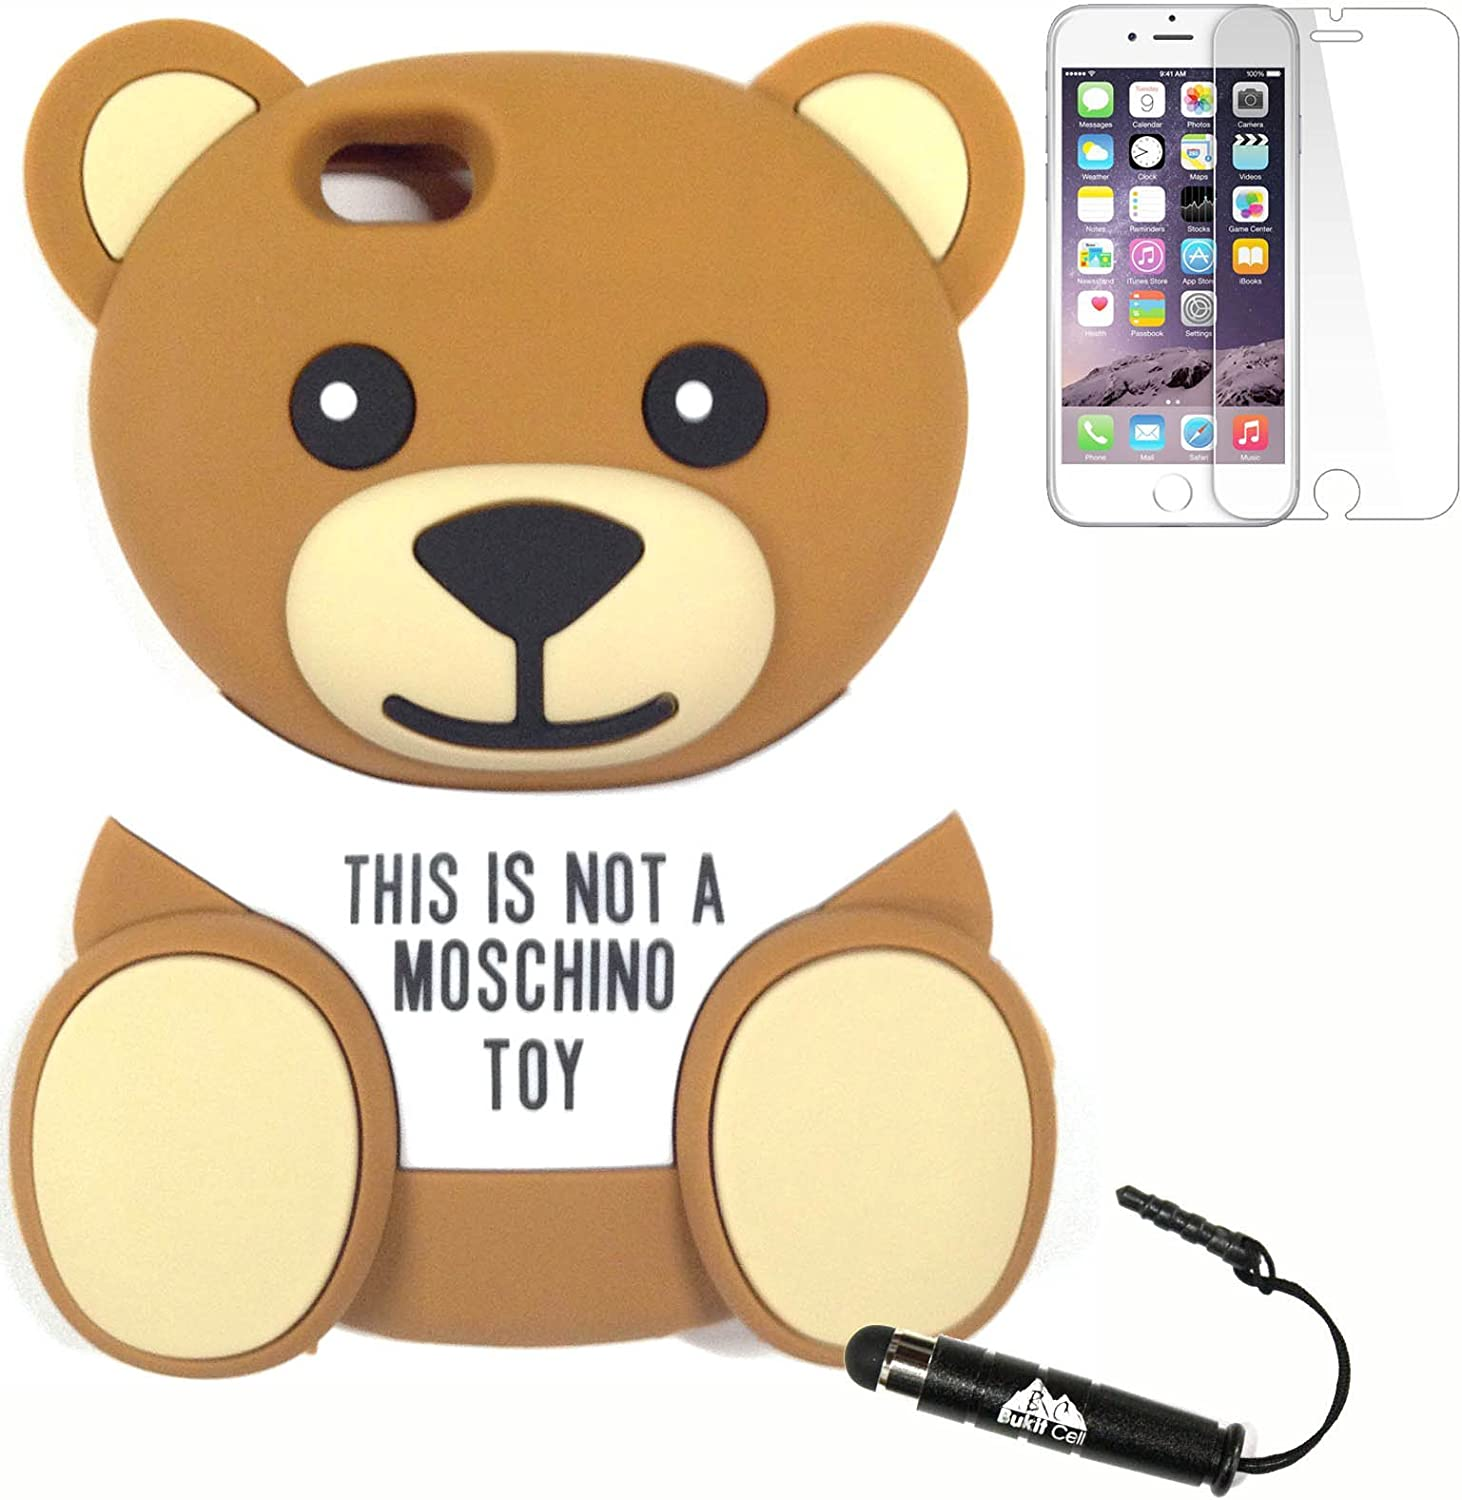 cover iphone this is not a moschino toy